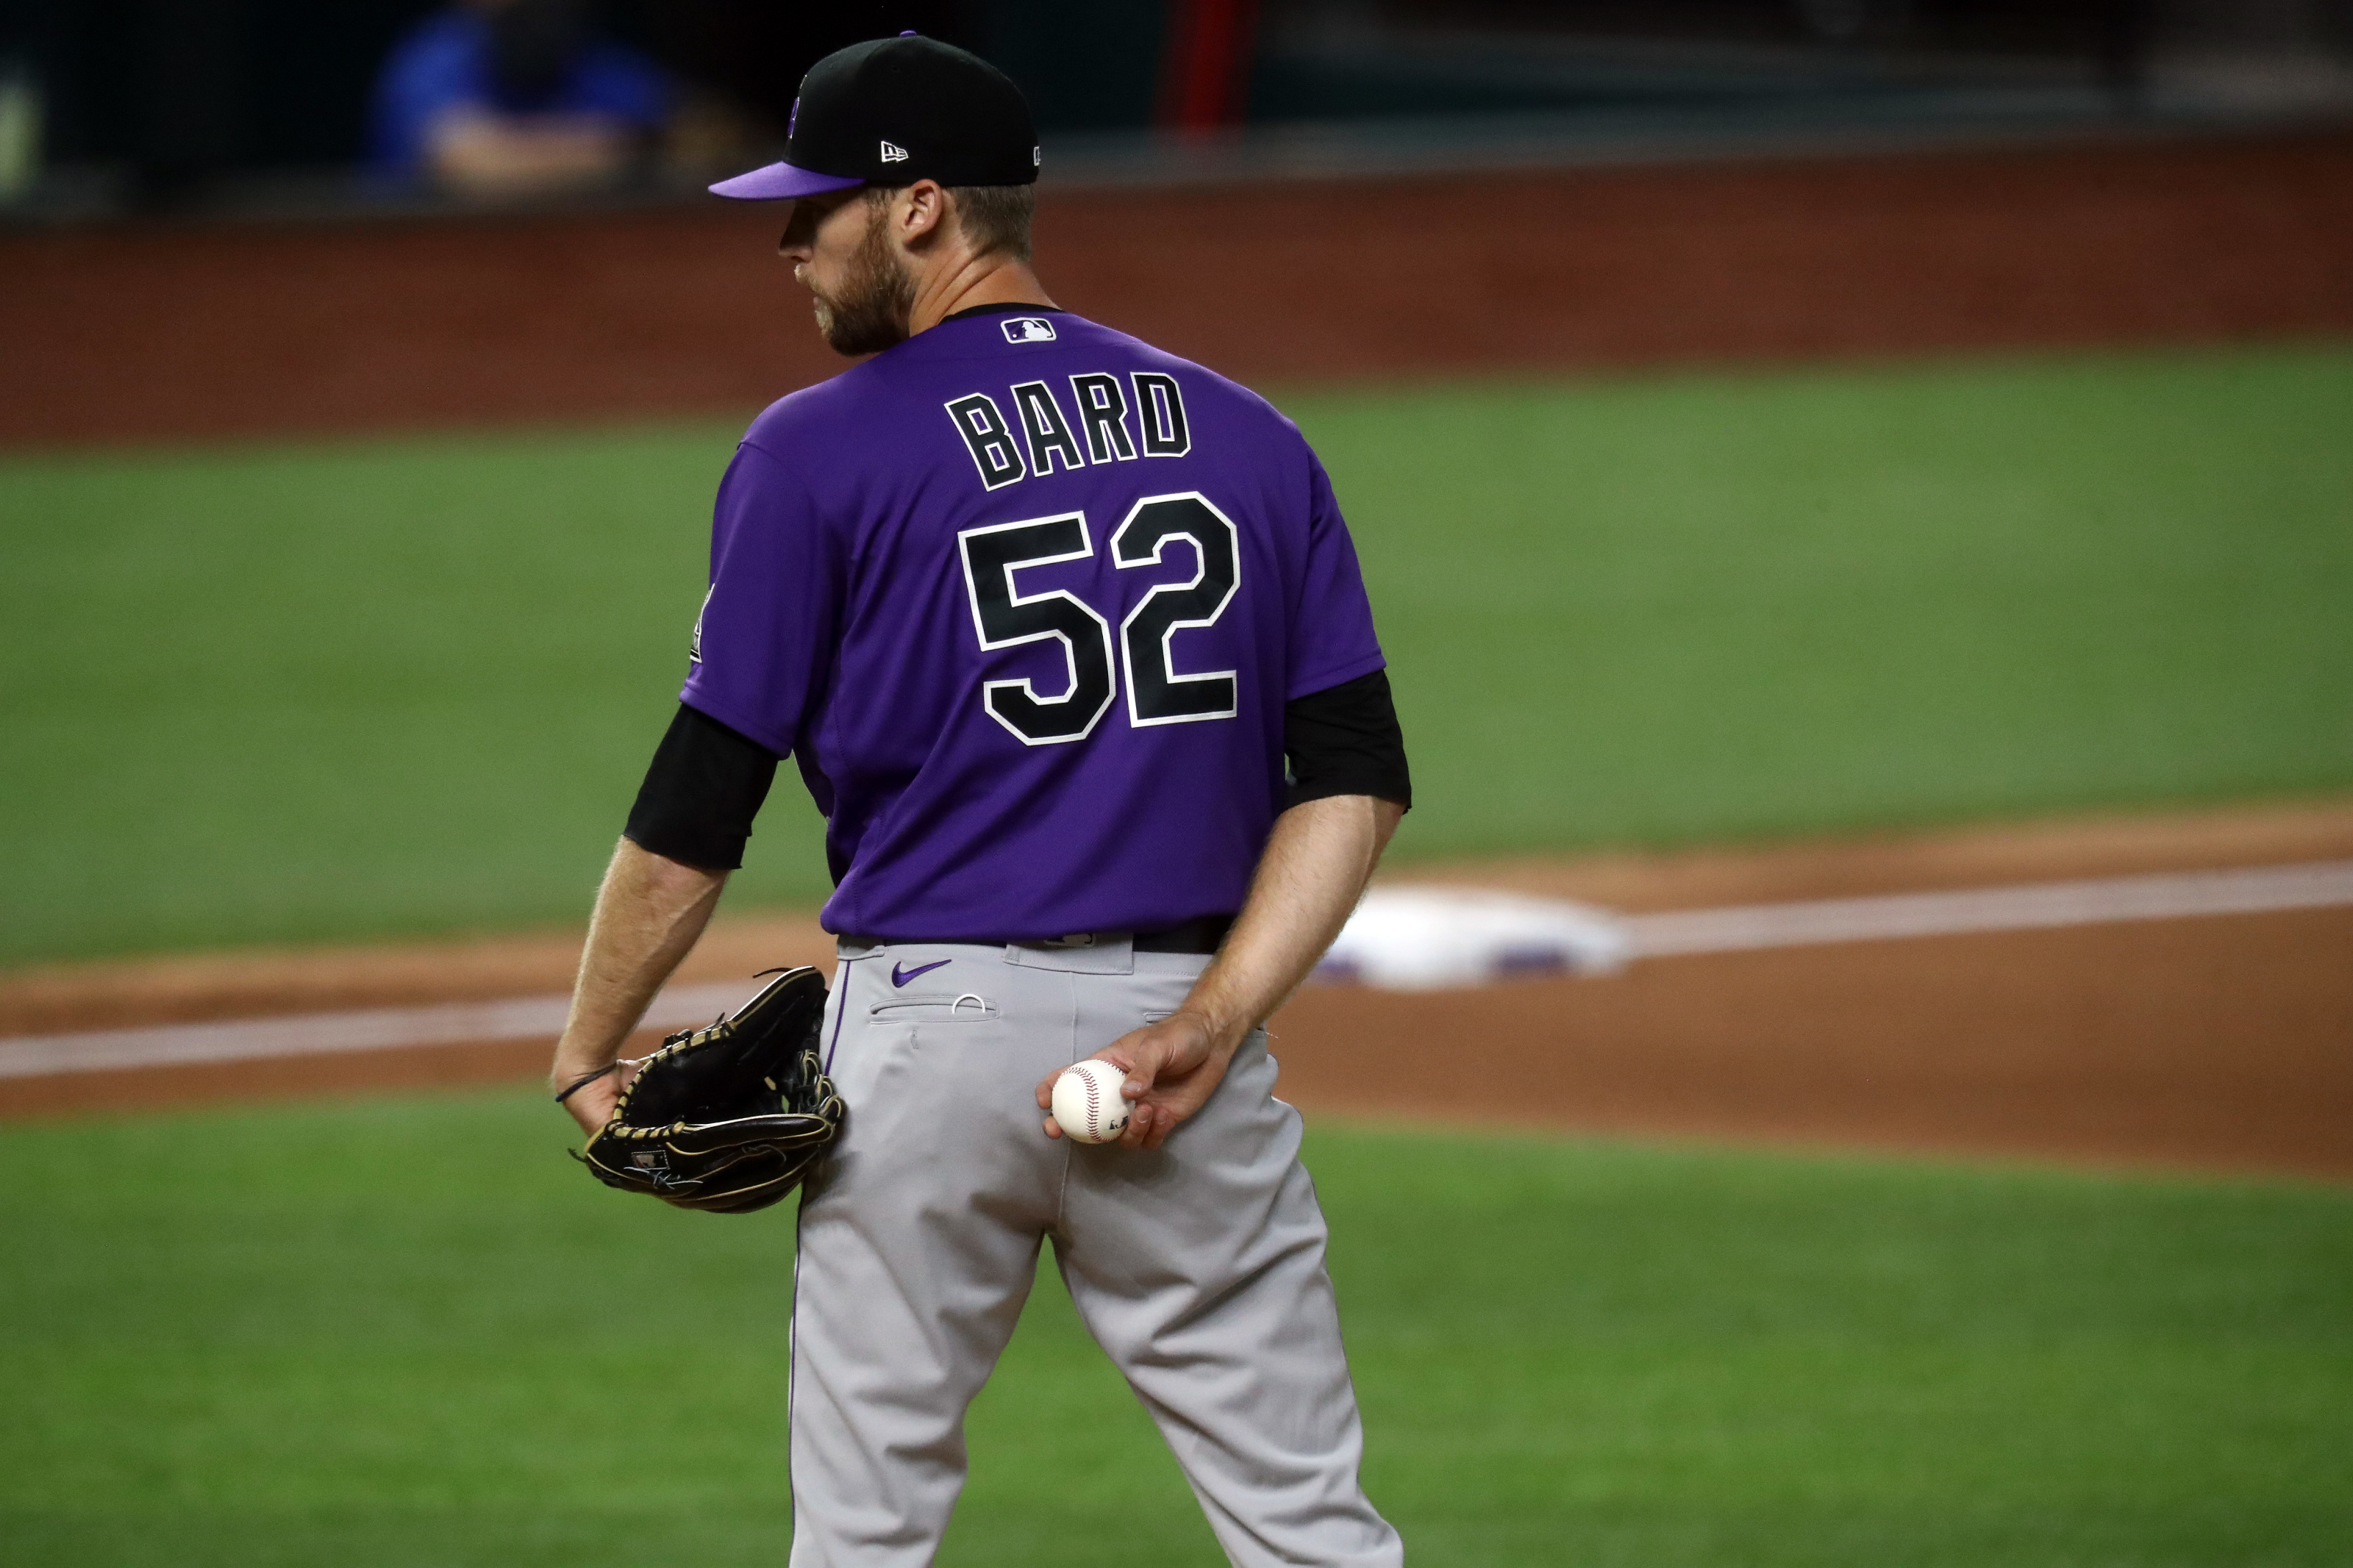 Colorado Rockies spring training: Daniel Bard ready for 162 games, not just  60